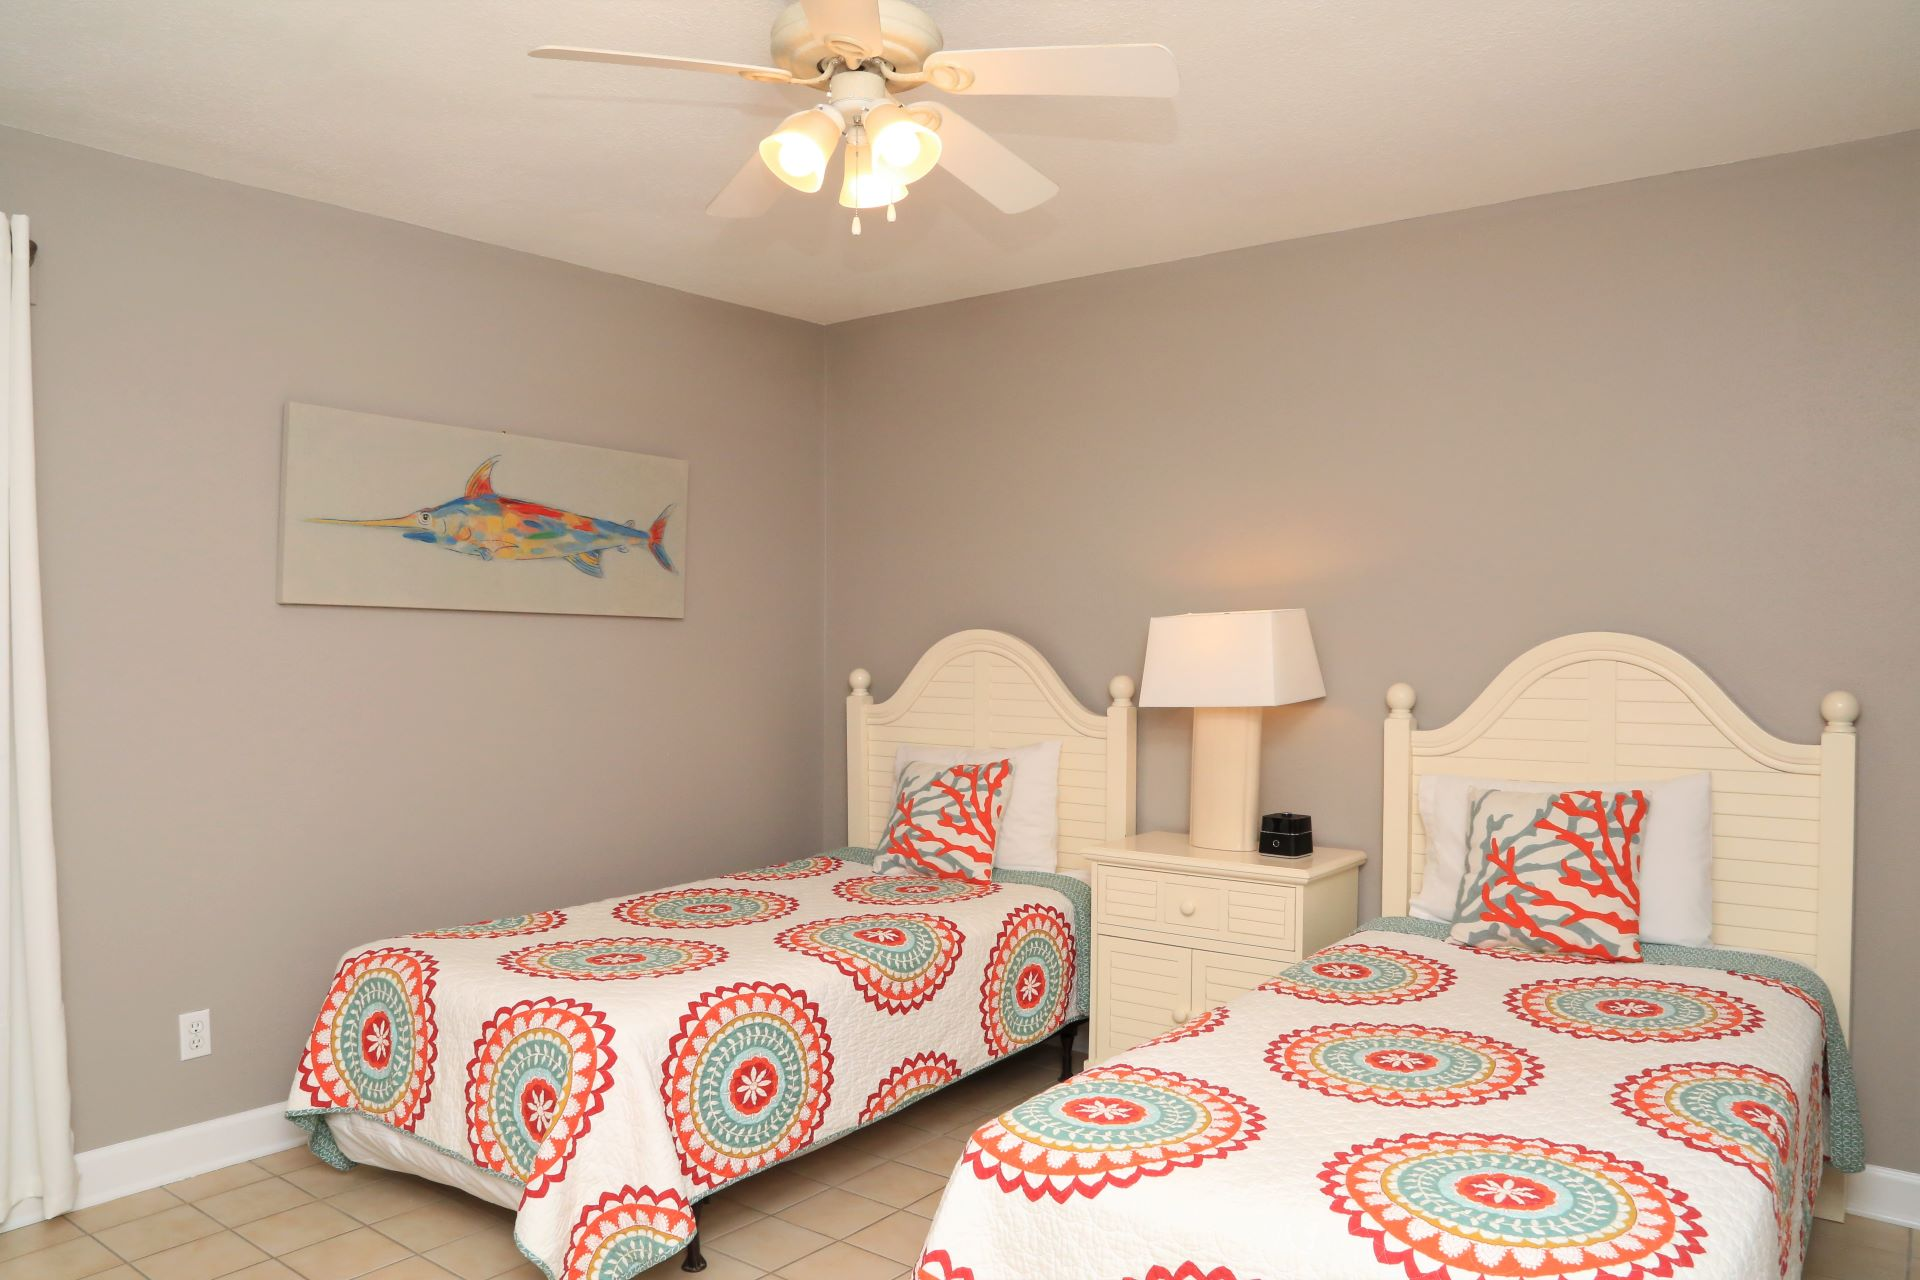 The second bedroom includes two twin-sized beds.